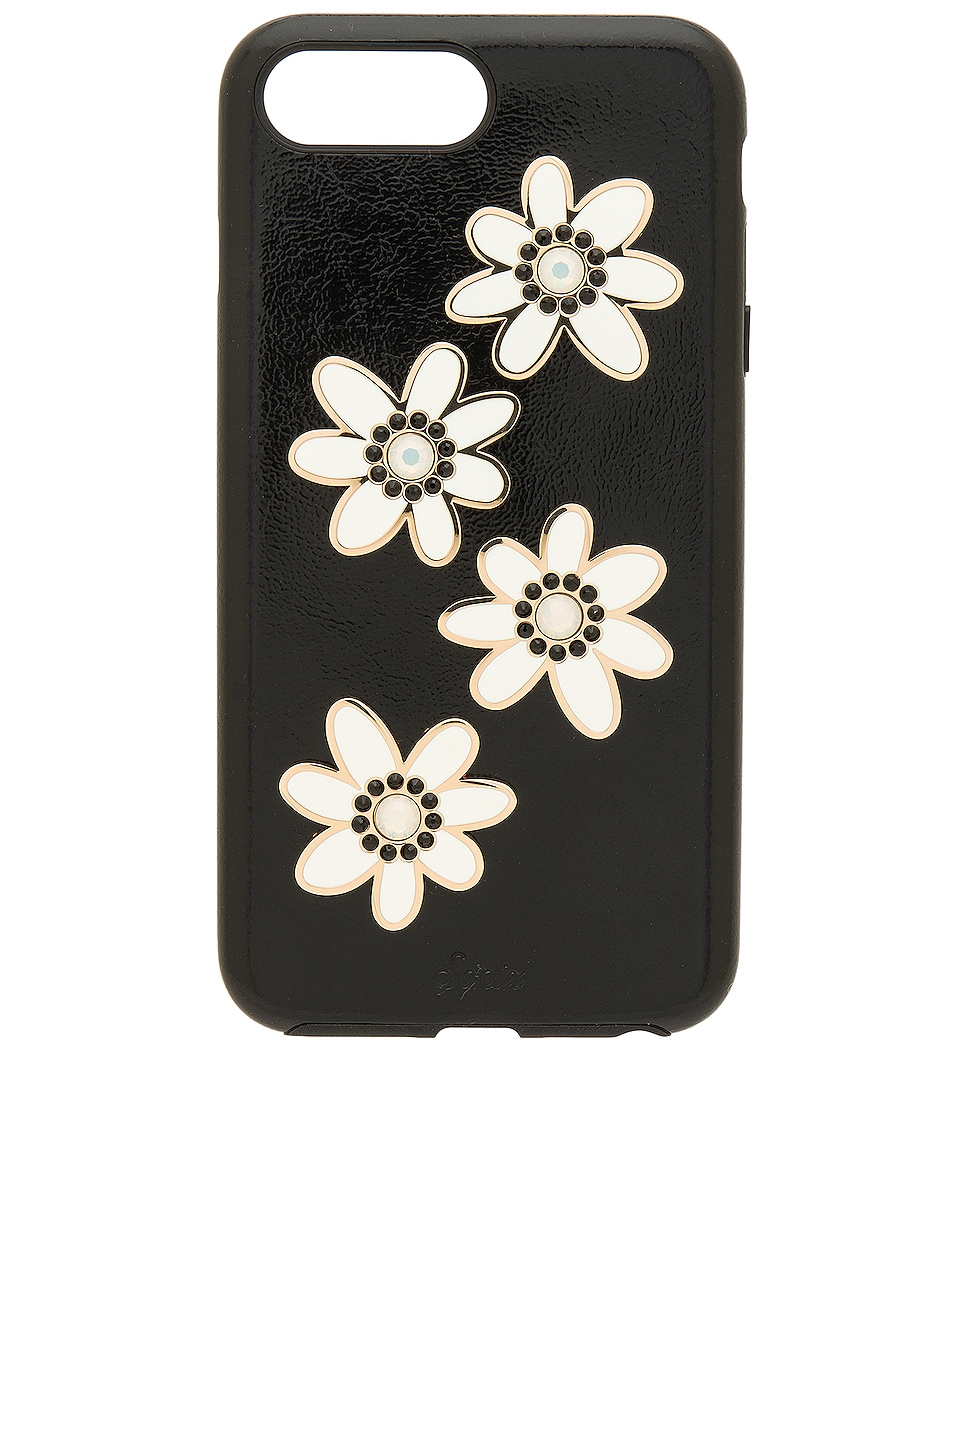 Sonix Swarovski Opal Daisy iPhone 6/7/ Plus Case in Opal Daisy